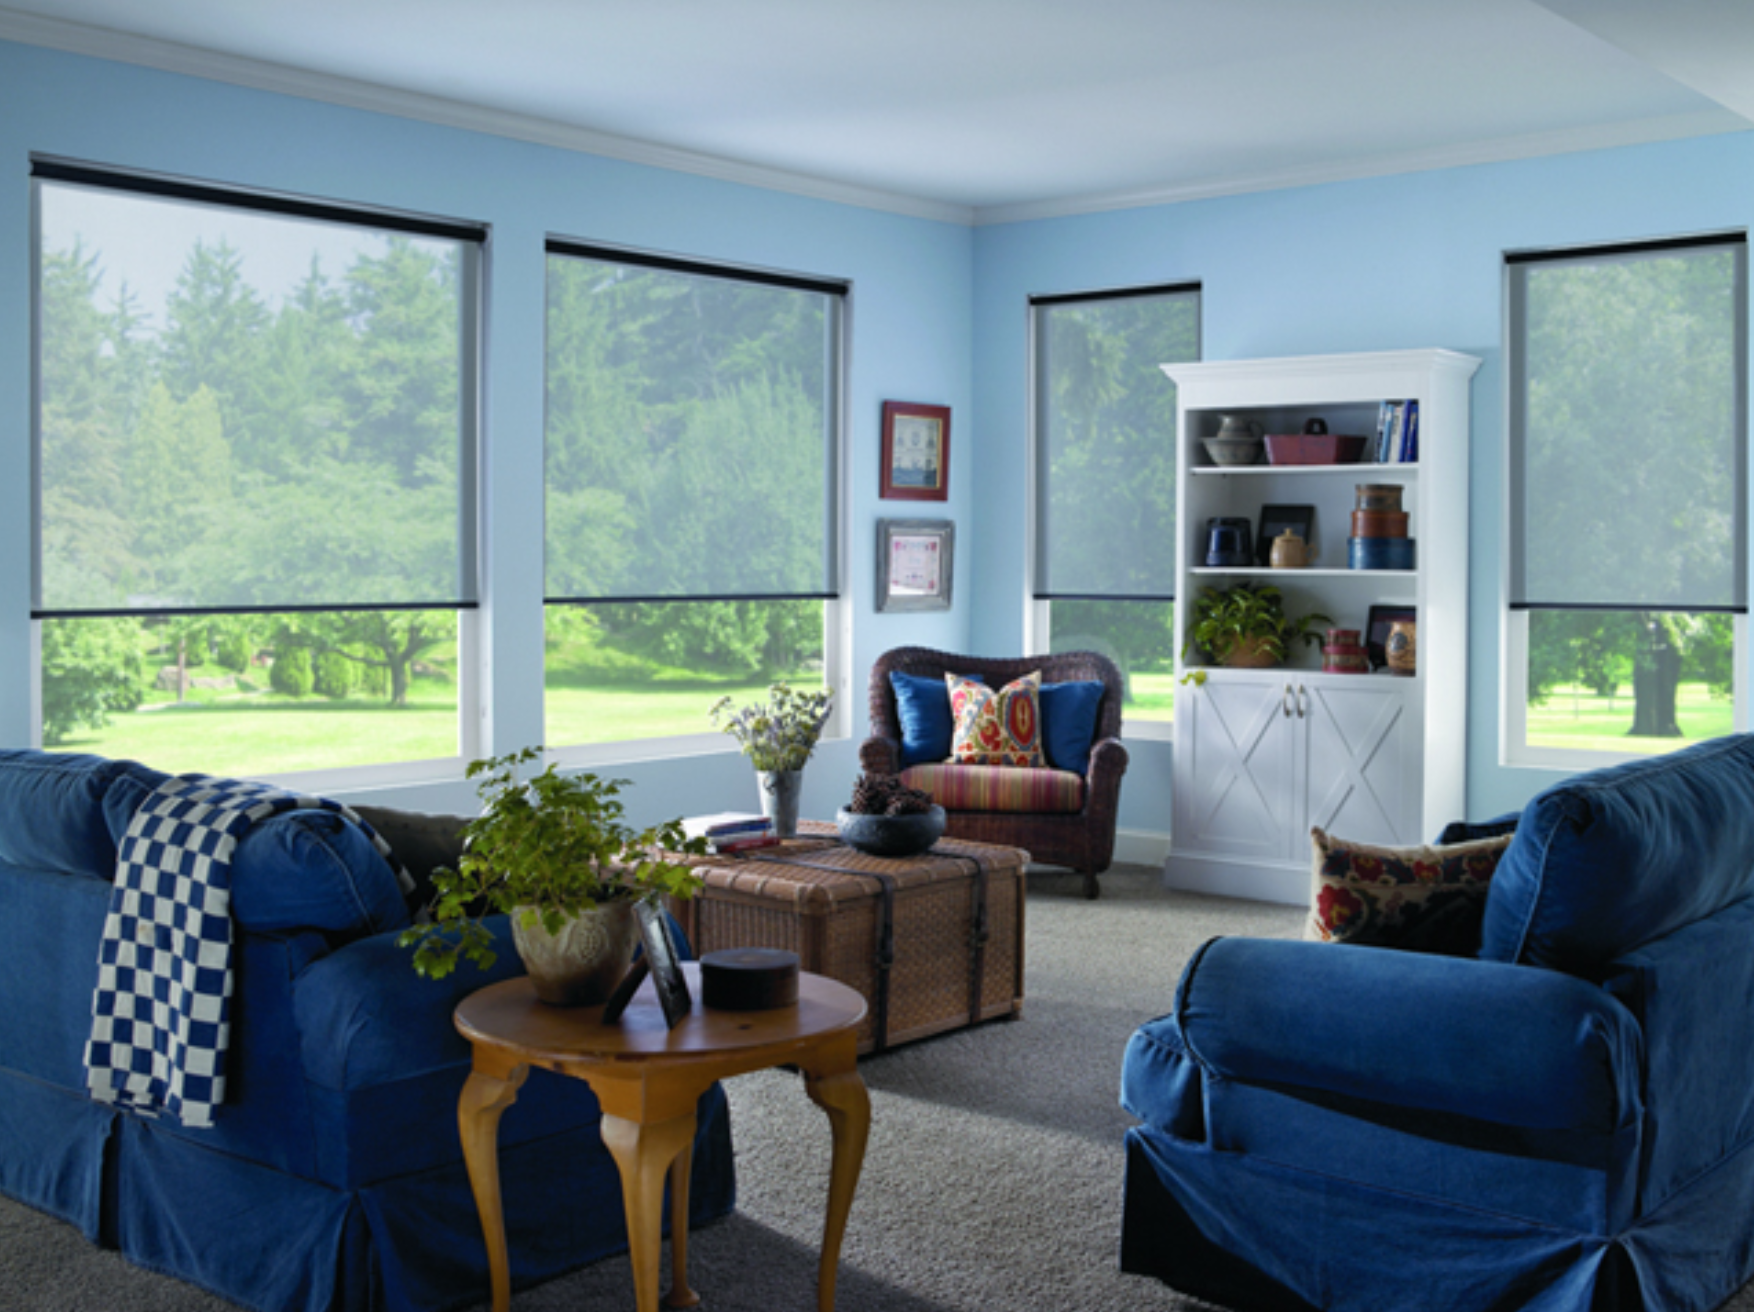 living room interior with shades half drawn down